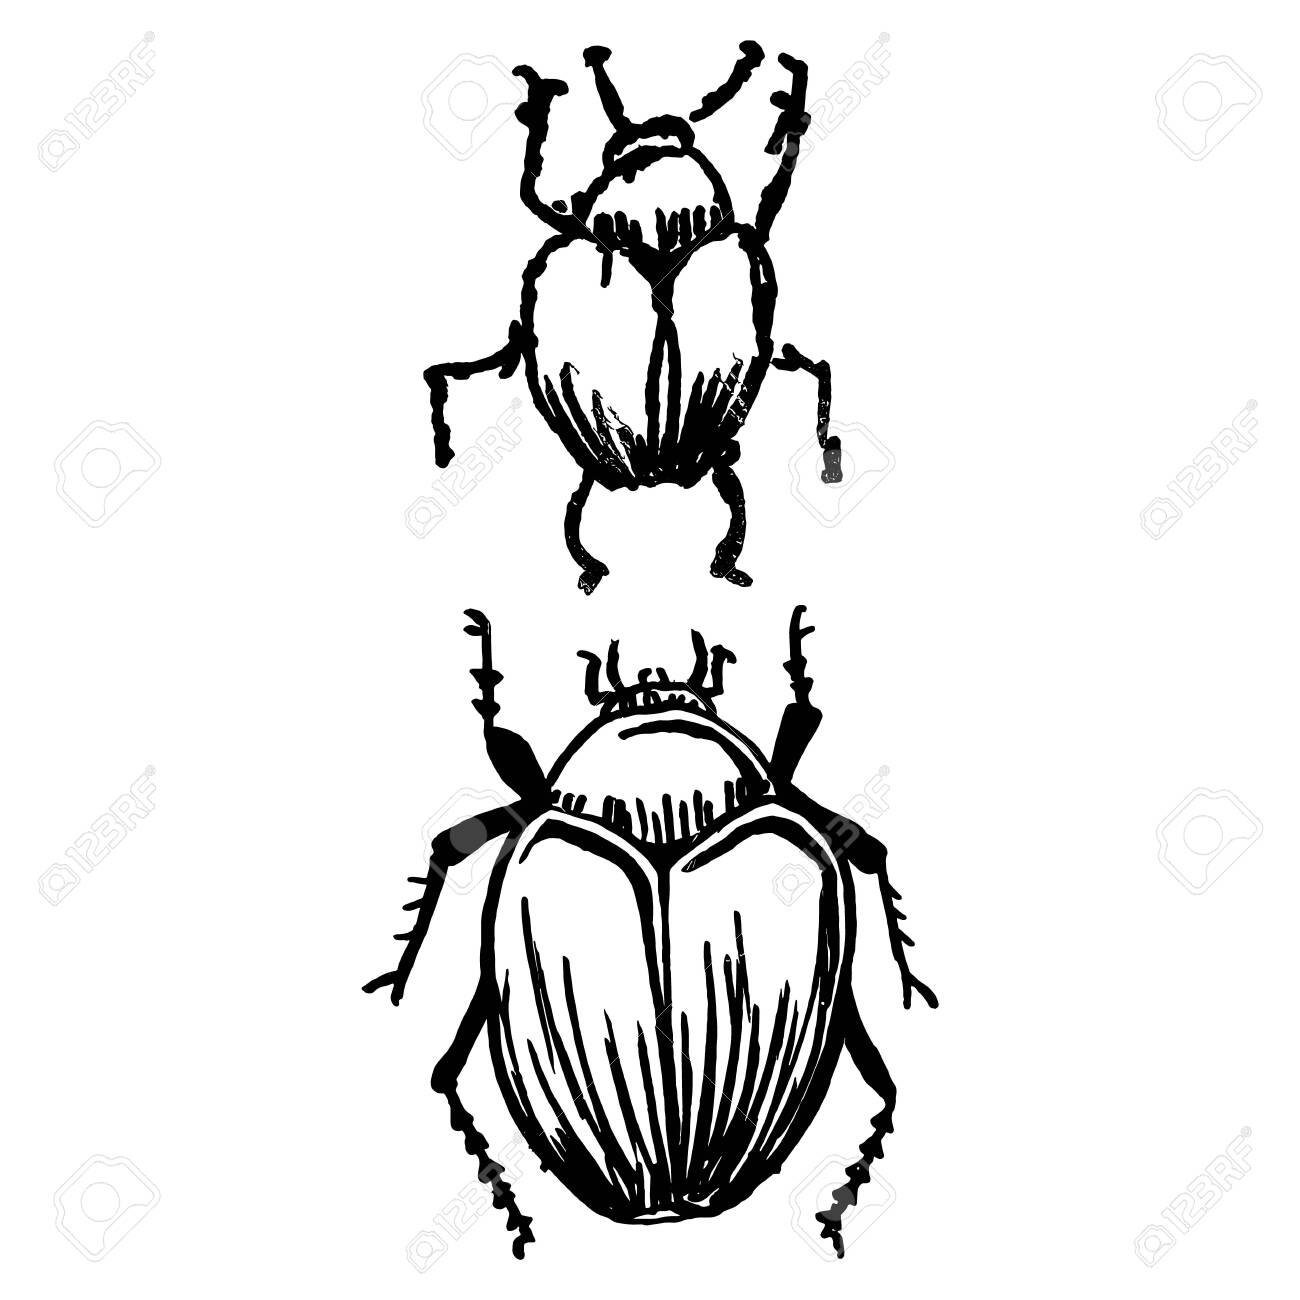 insect black white cartoon pest clipart - Insect, Black, White, transparent clip  art